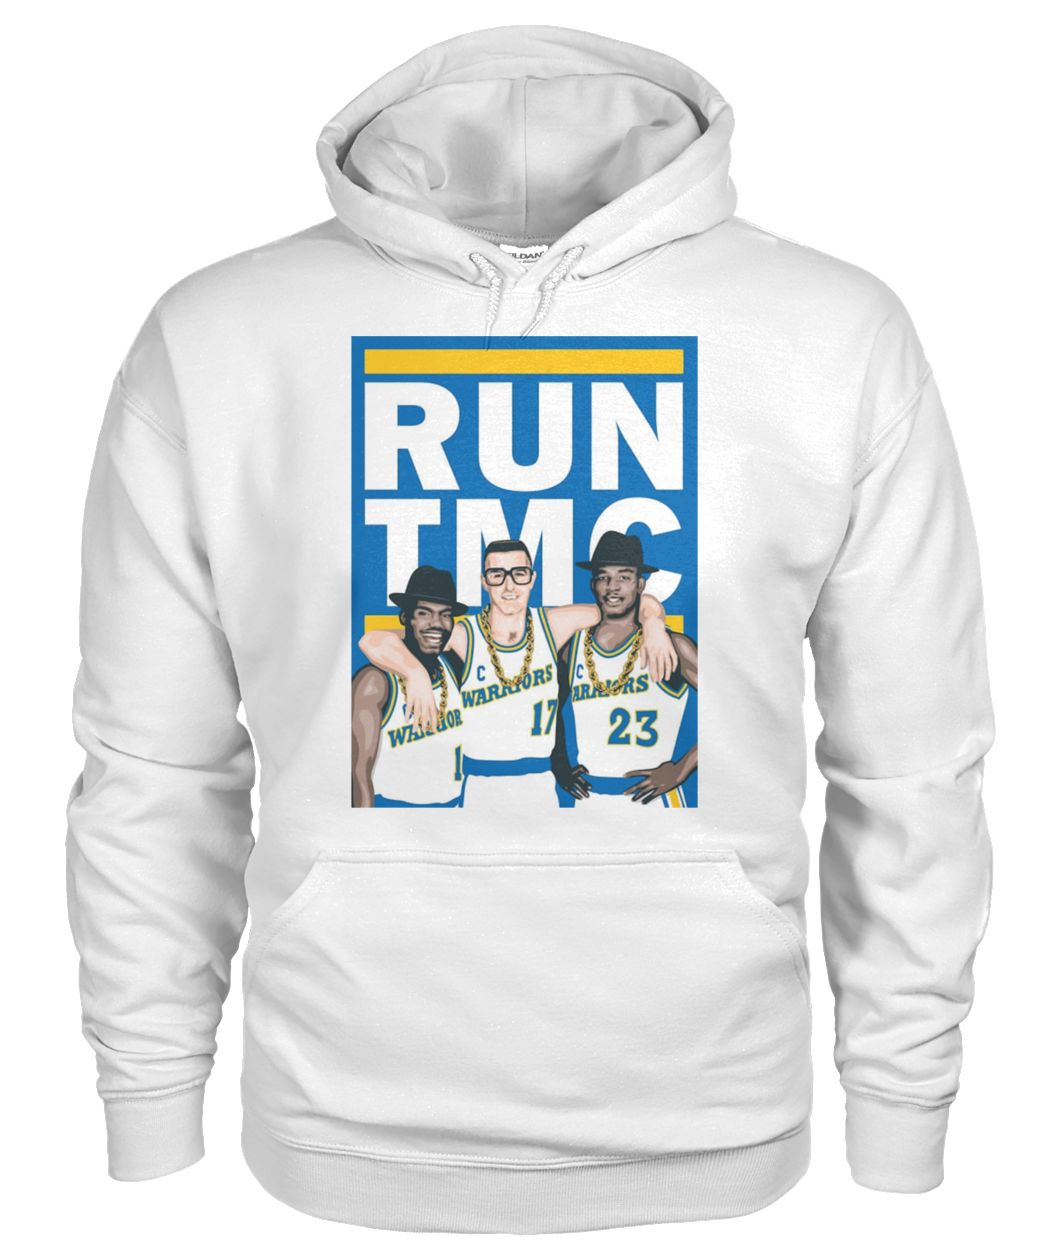 Golden state warriors RUN TMC gildan hoodie